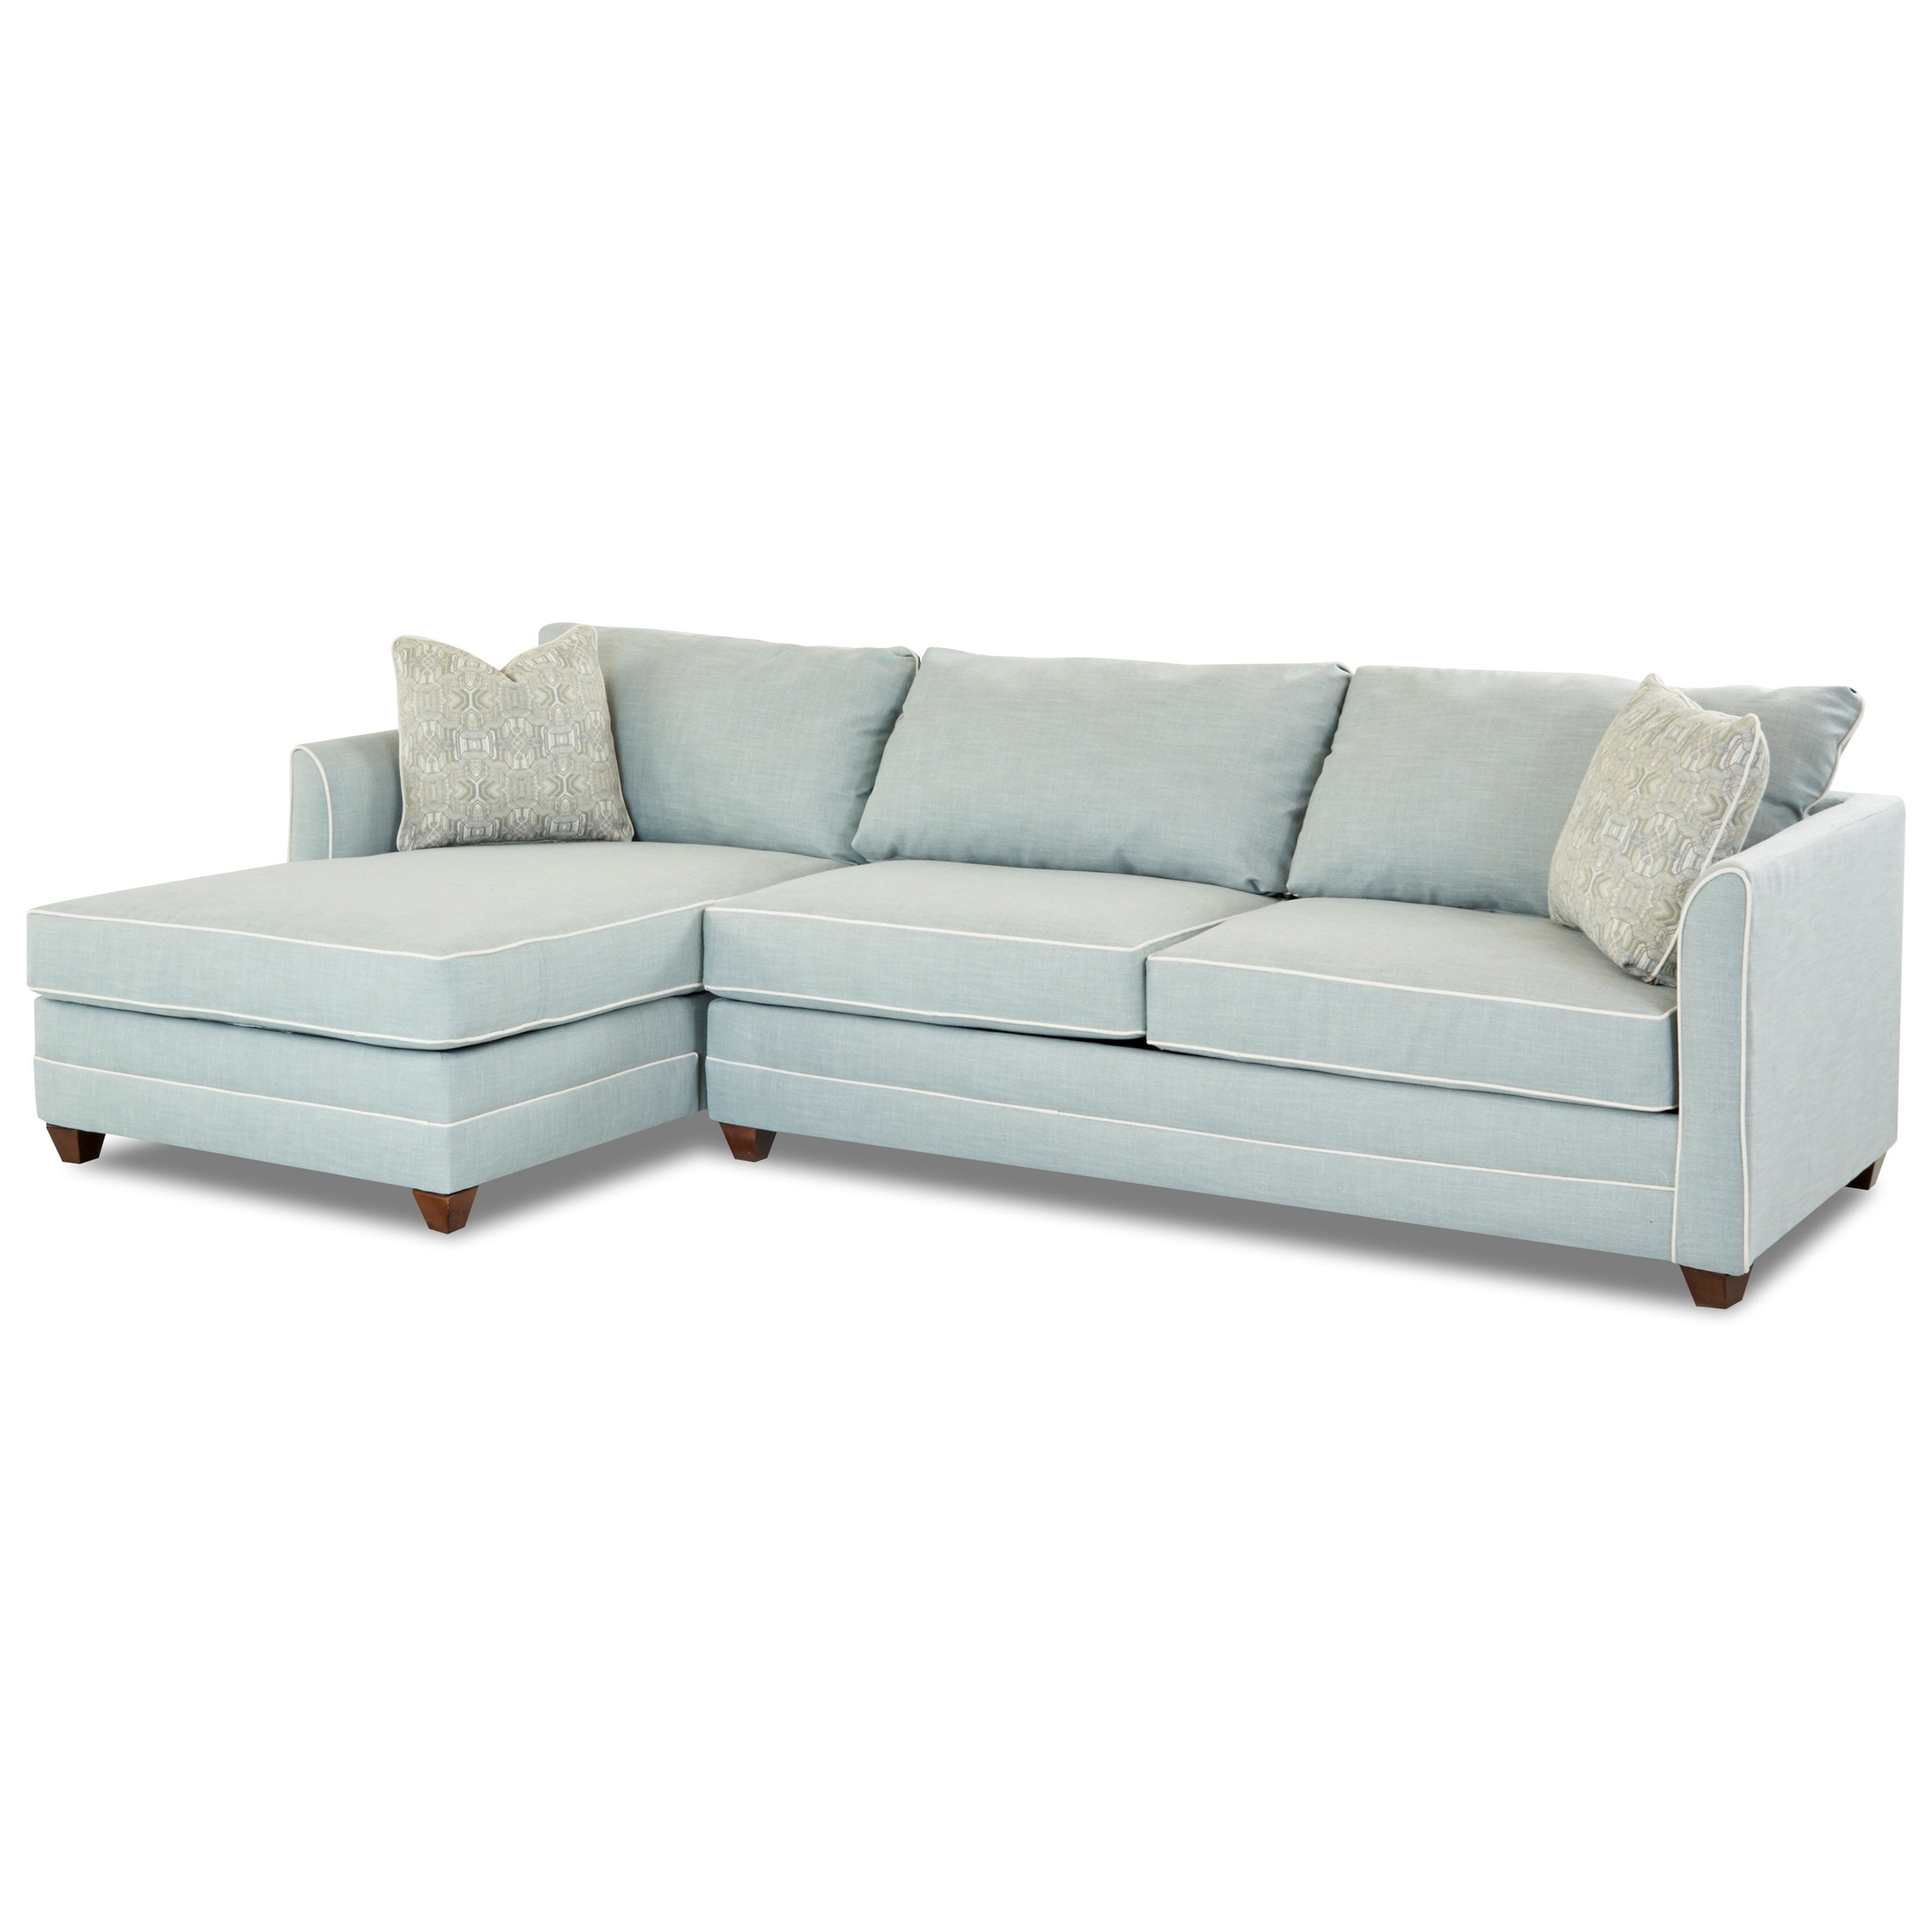 Two Piece Sectional Sofa with RAF Sleeper Sofa and Enso Memory Foam Mattress